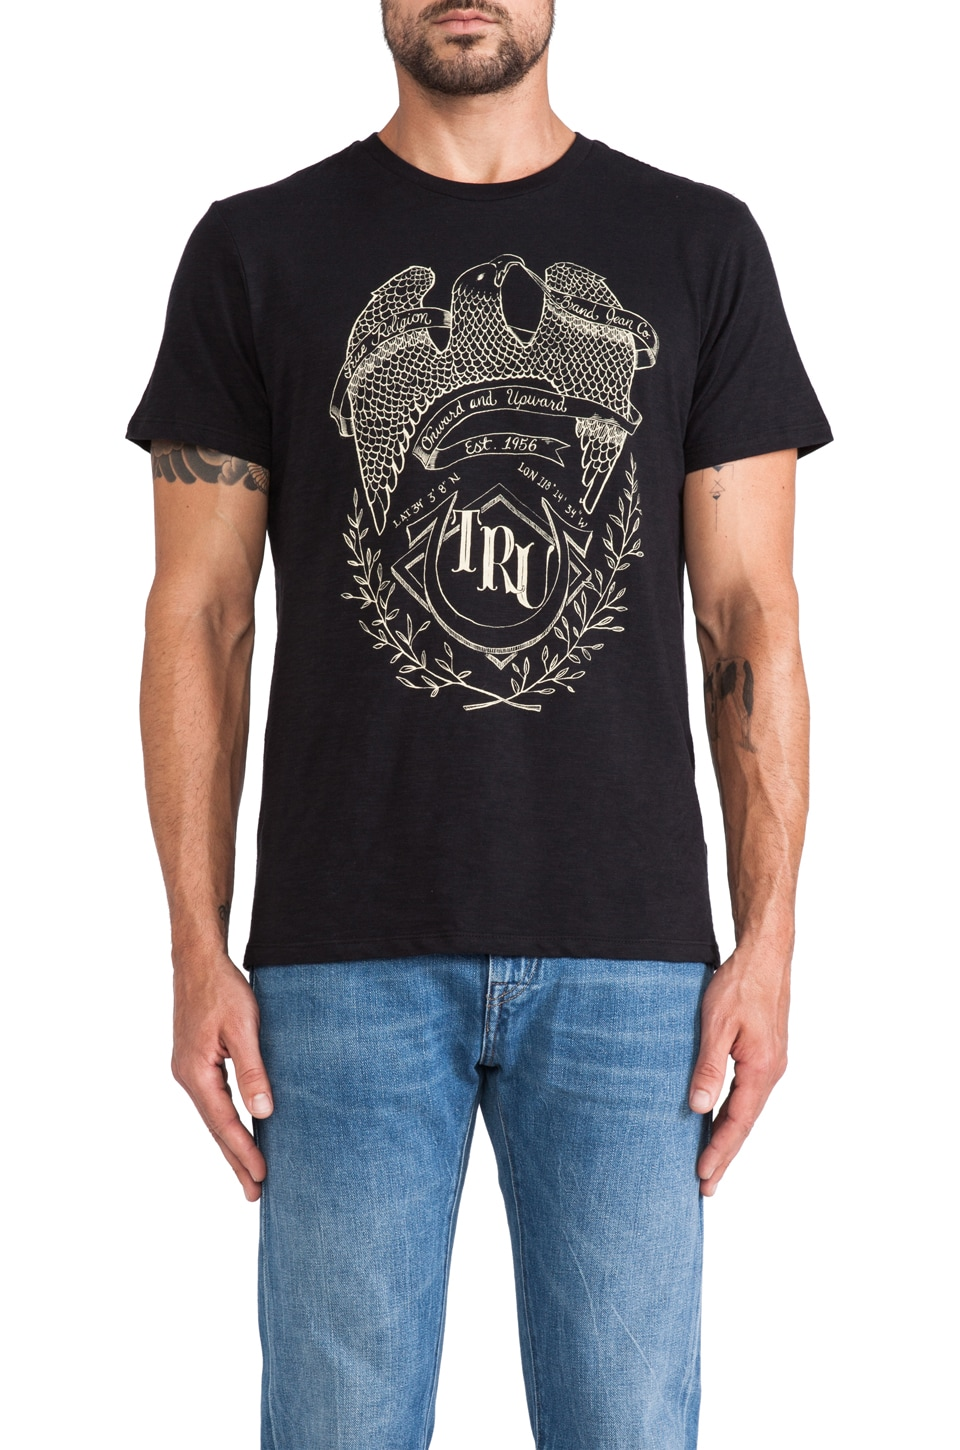 True Religion Onward Tee in Black